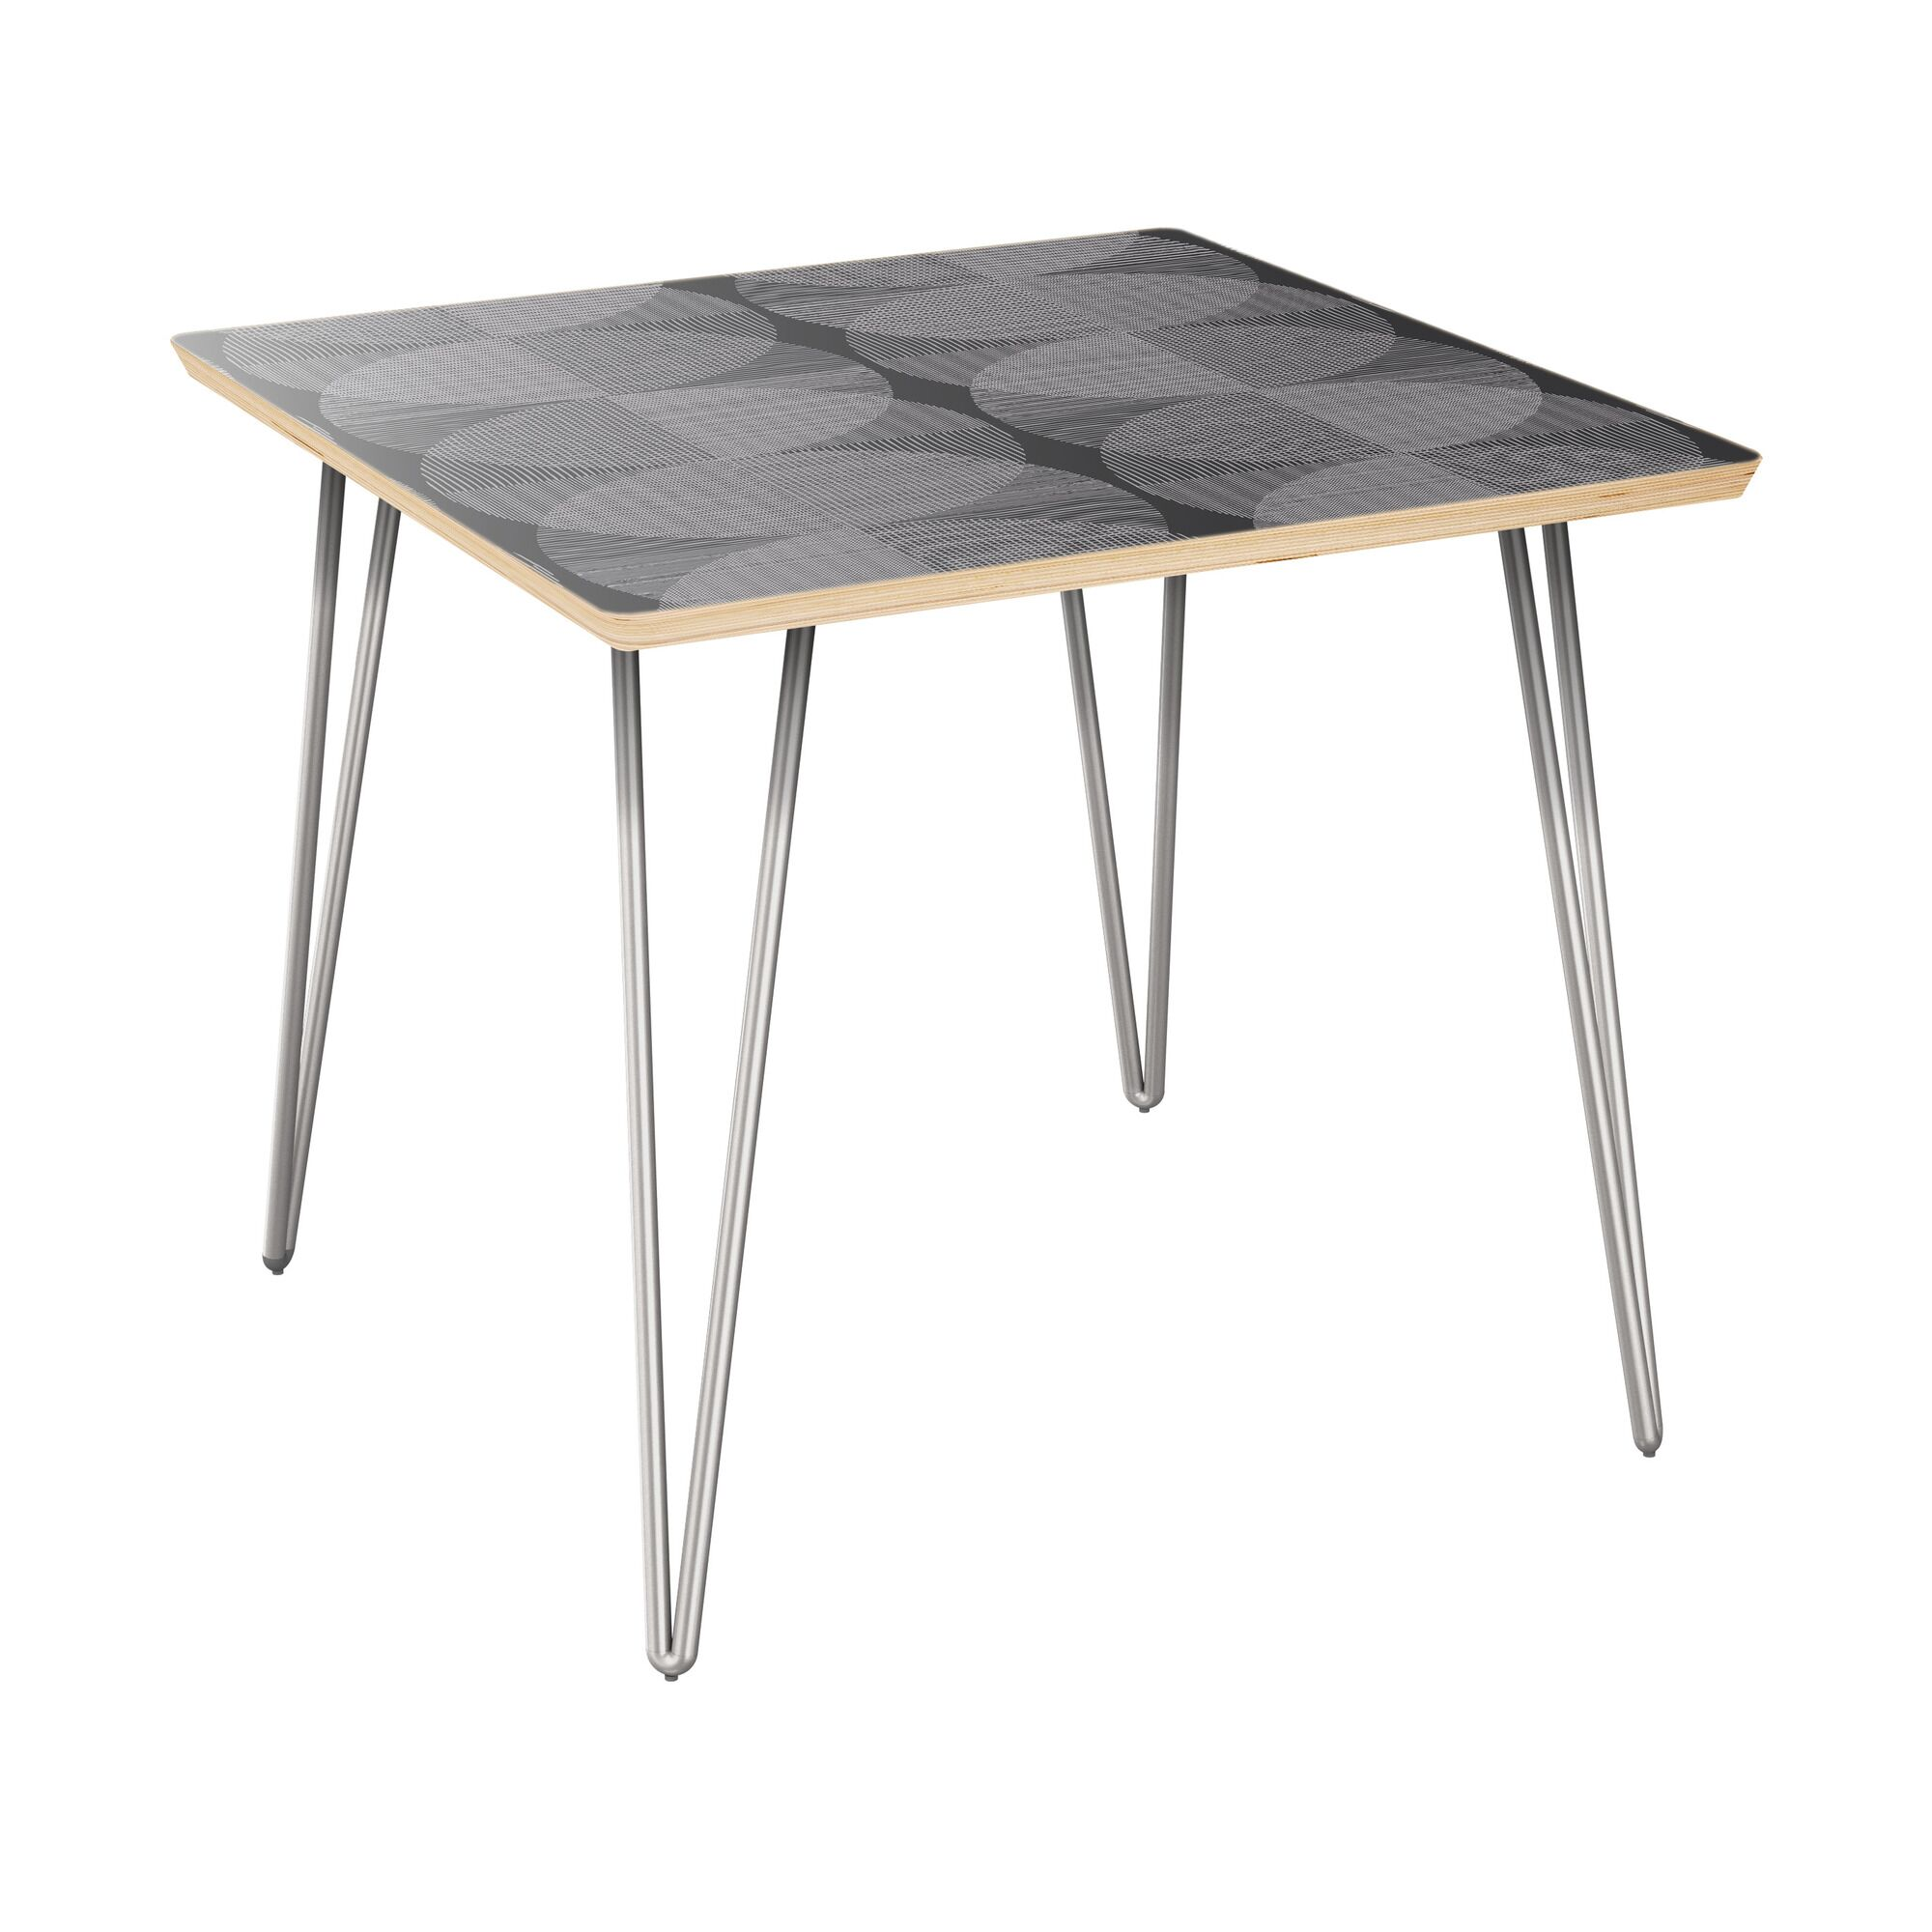 Espitia End Table Table Top Color: Natural, Table Base Color: Chrome